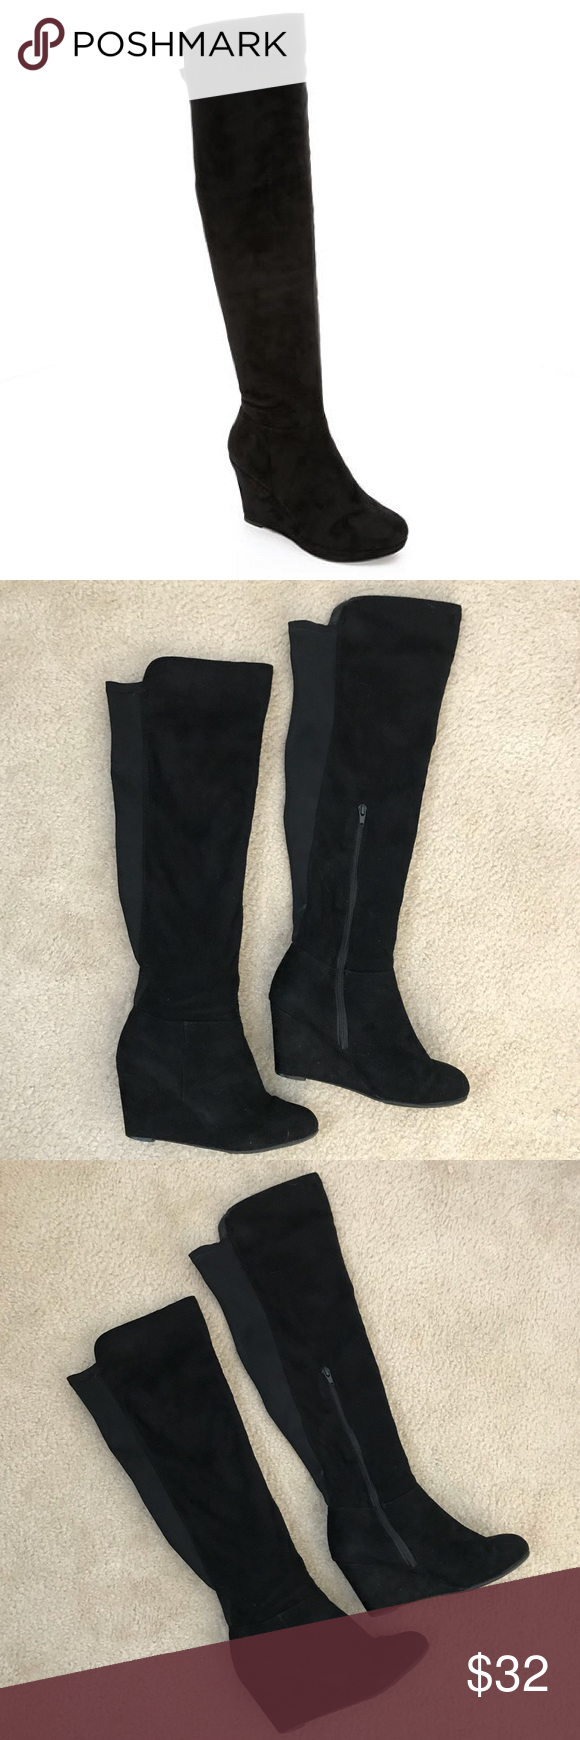 """6571310e6af Chinese Laundry Lulu Over the Knee Boots in Black Faux suede side zip over  the knee boots in black. 3.5"""" wedge heel. Elastic back for comfortable fit."""